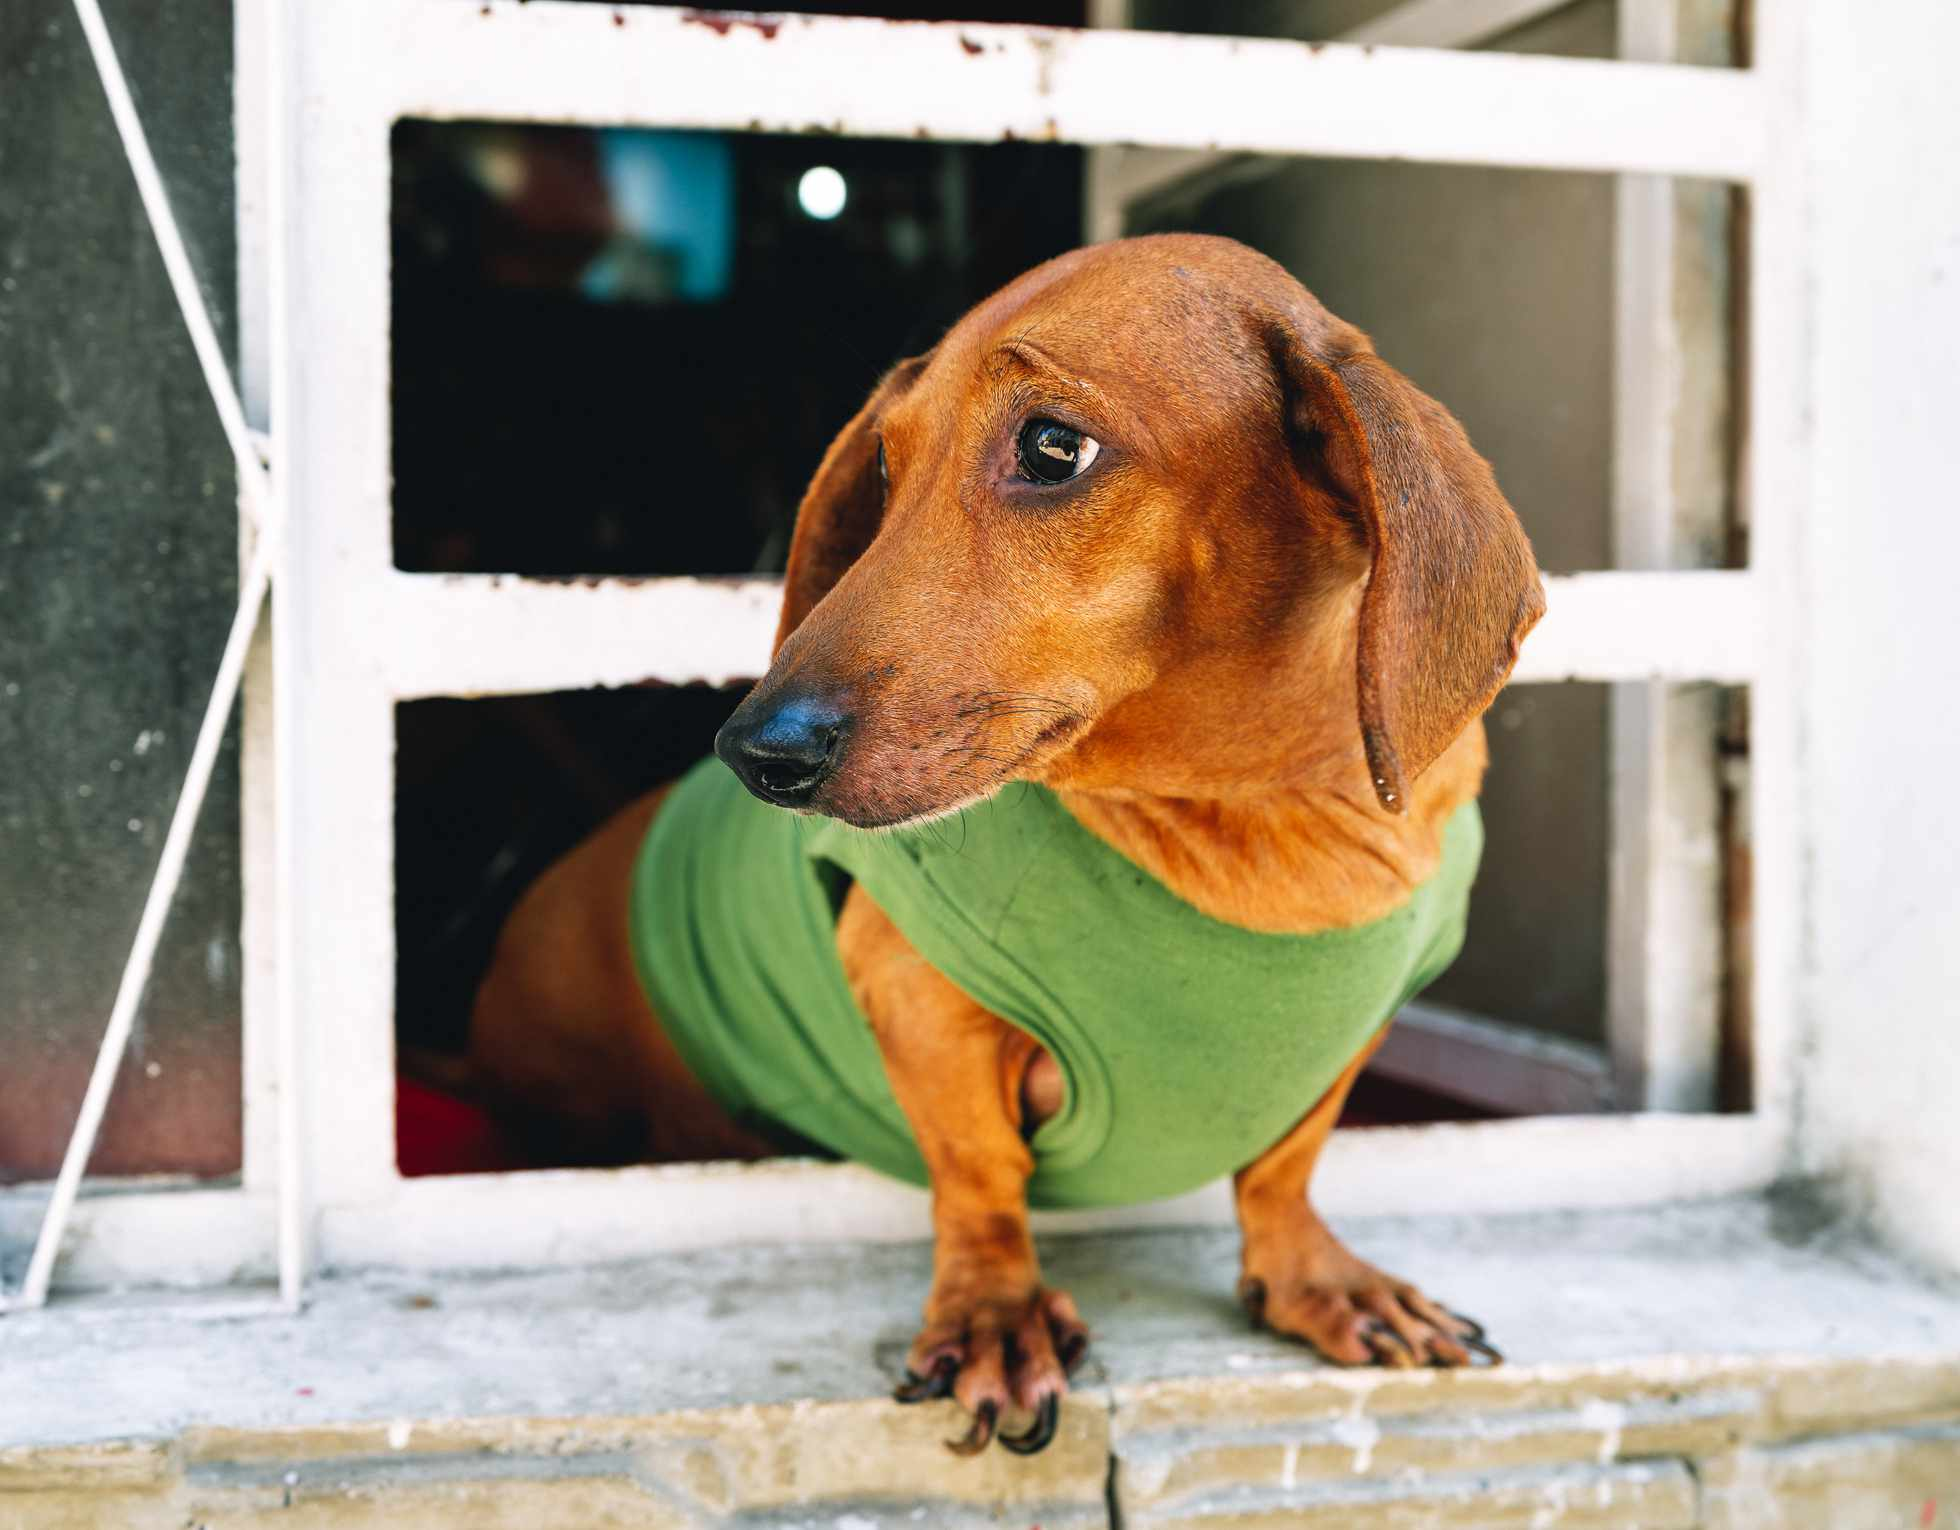 A brown dachshund leaning out the window.